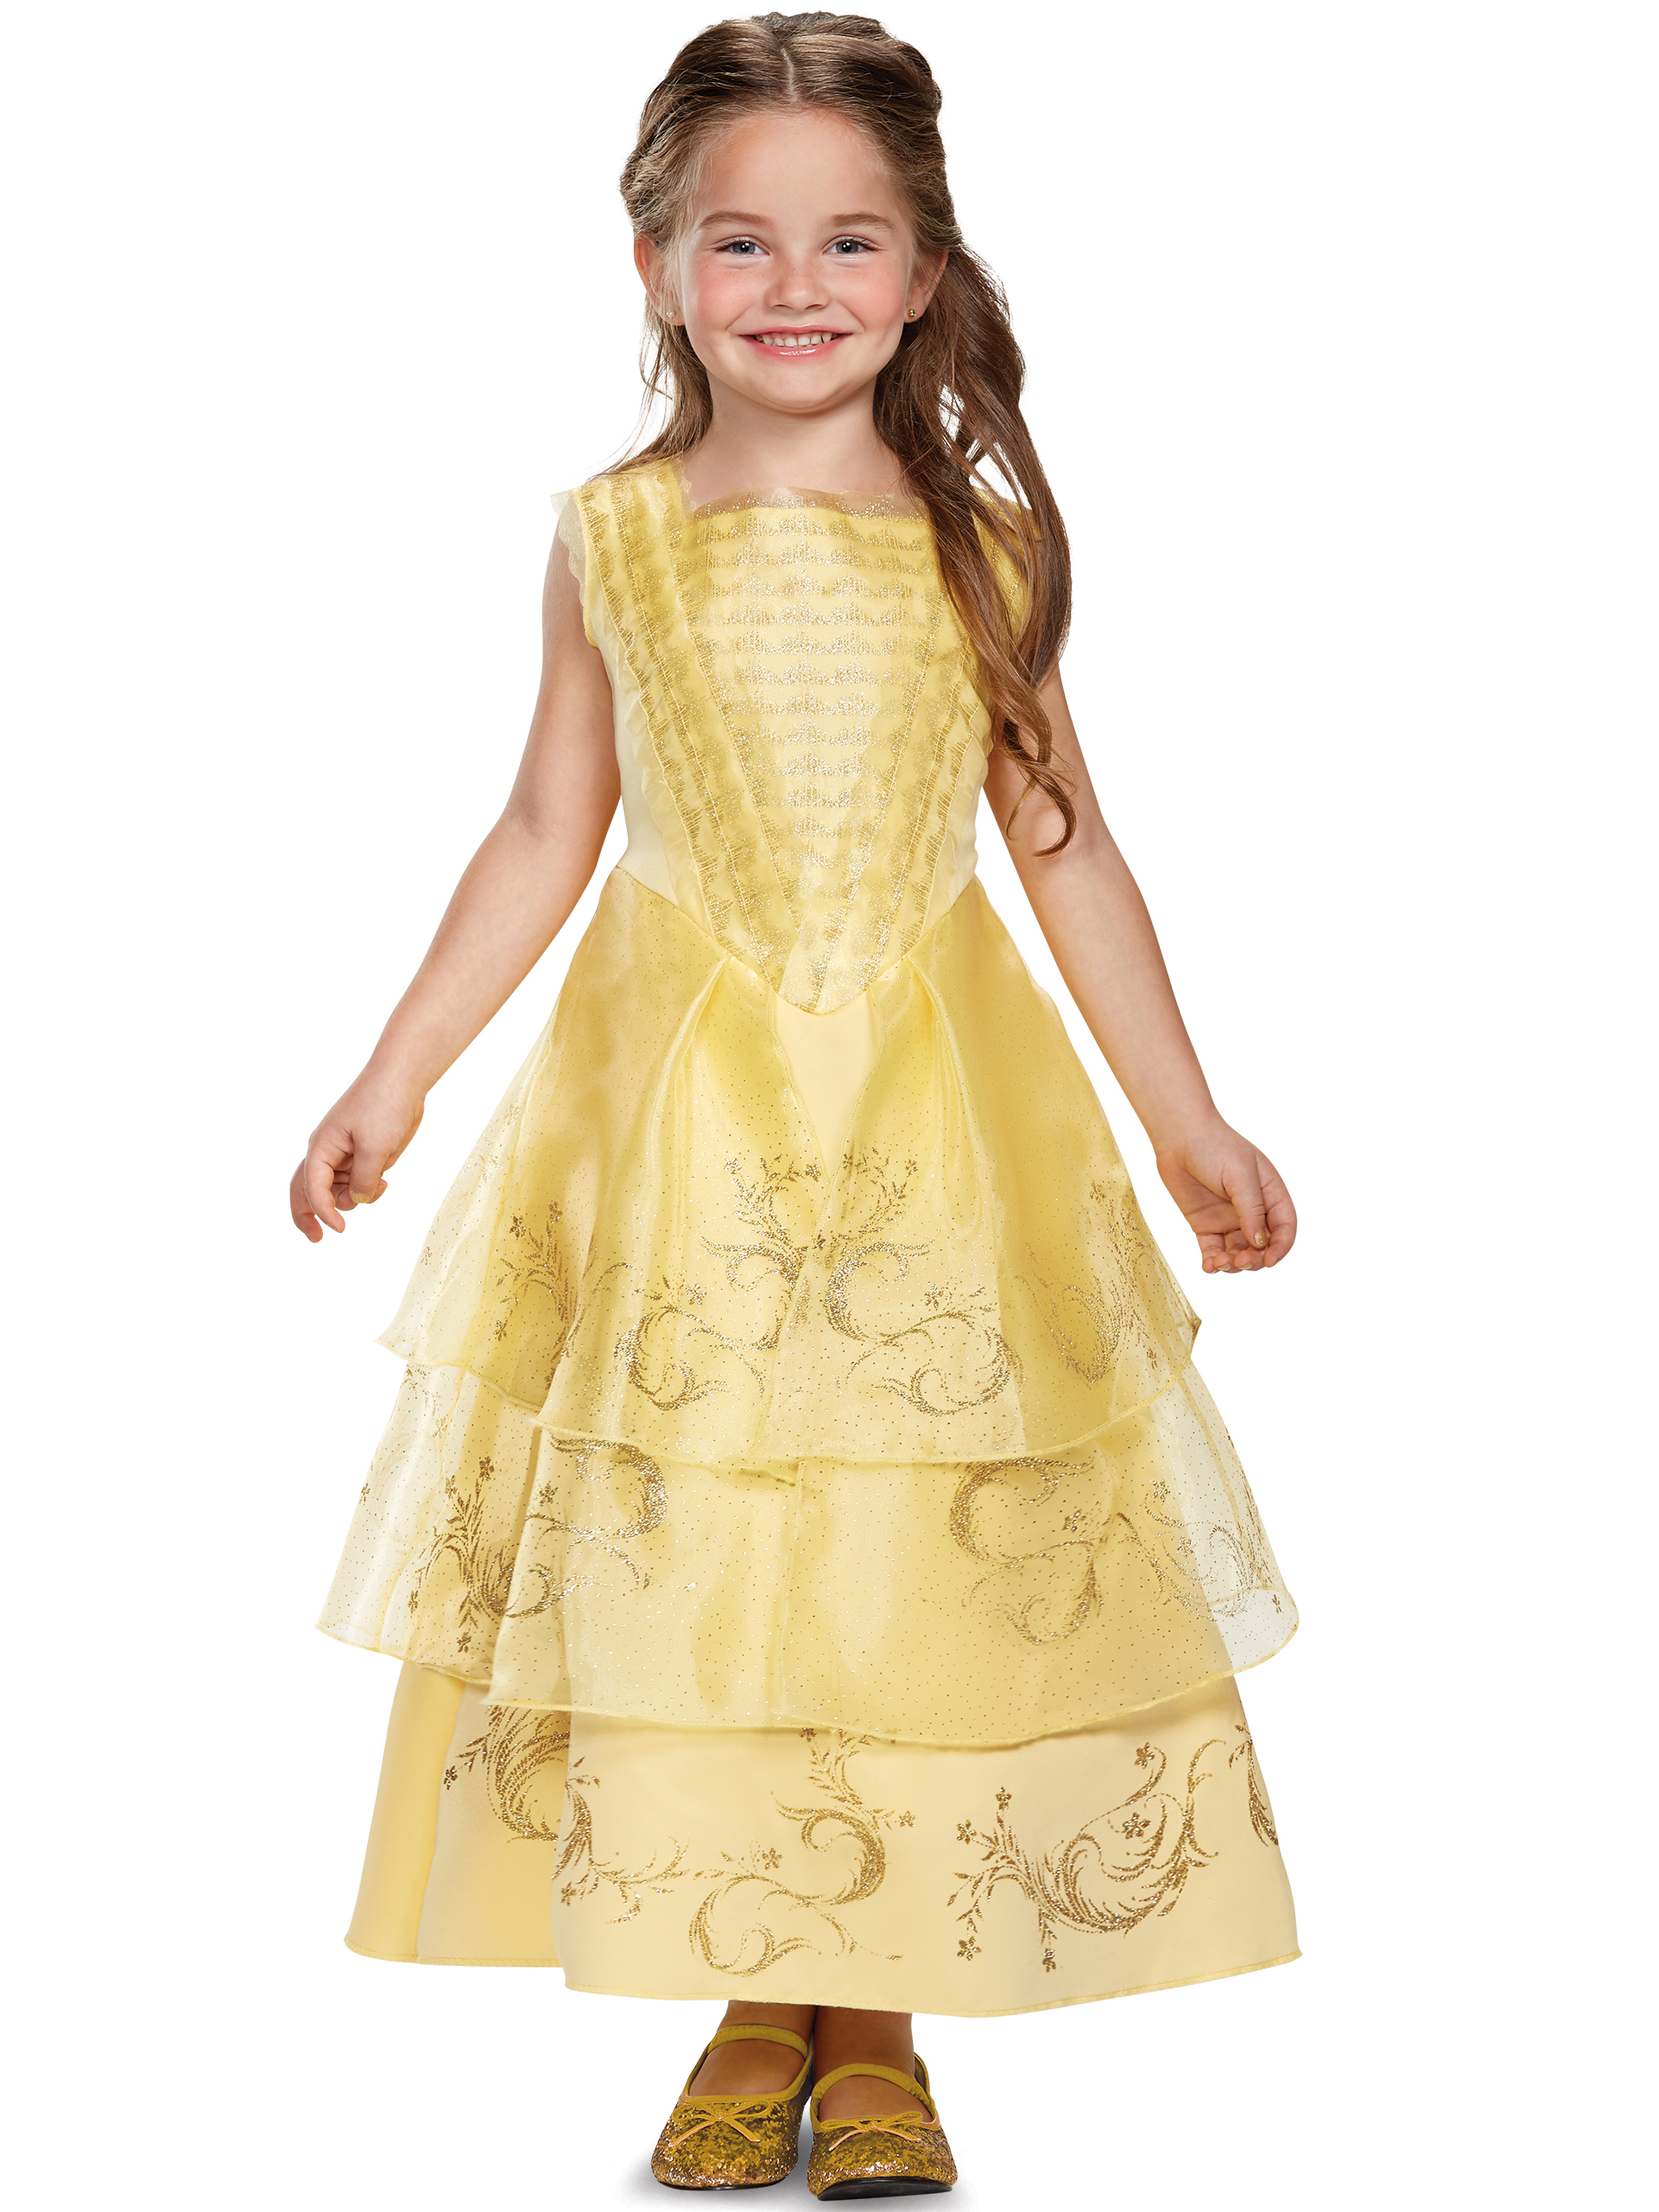 Disguise Inc Girls Belle Ball Gown Deluxe Costume